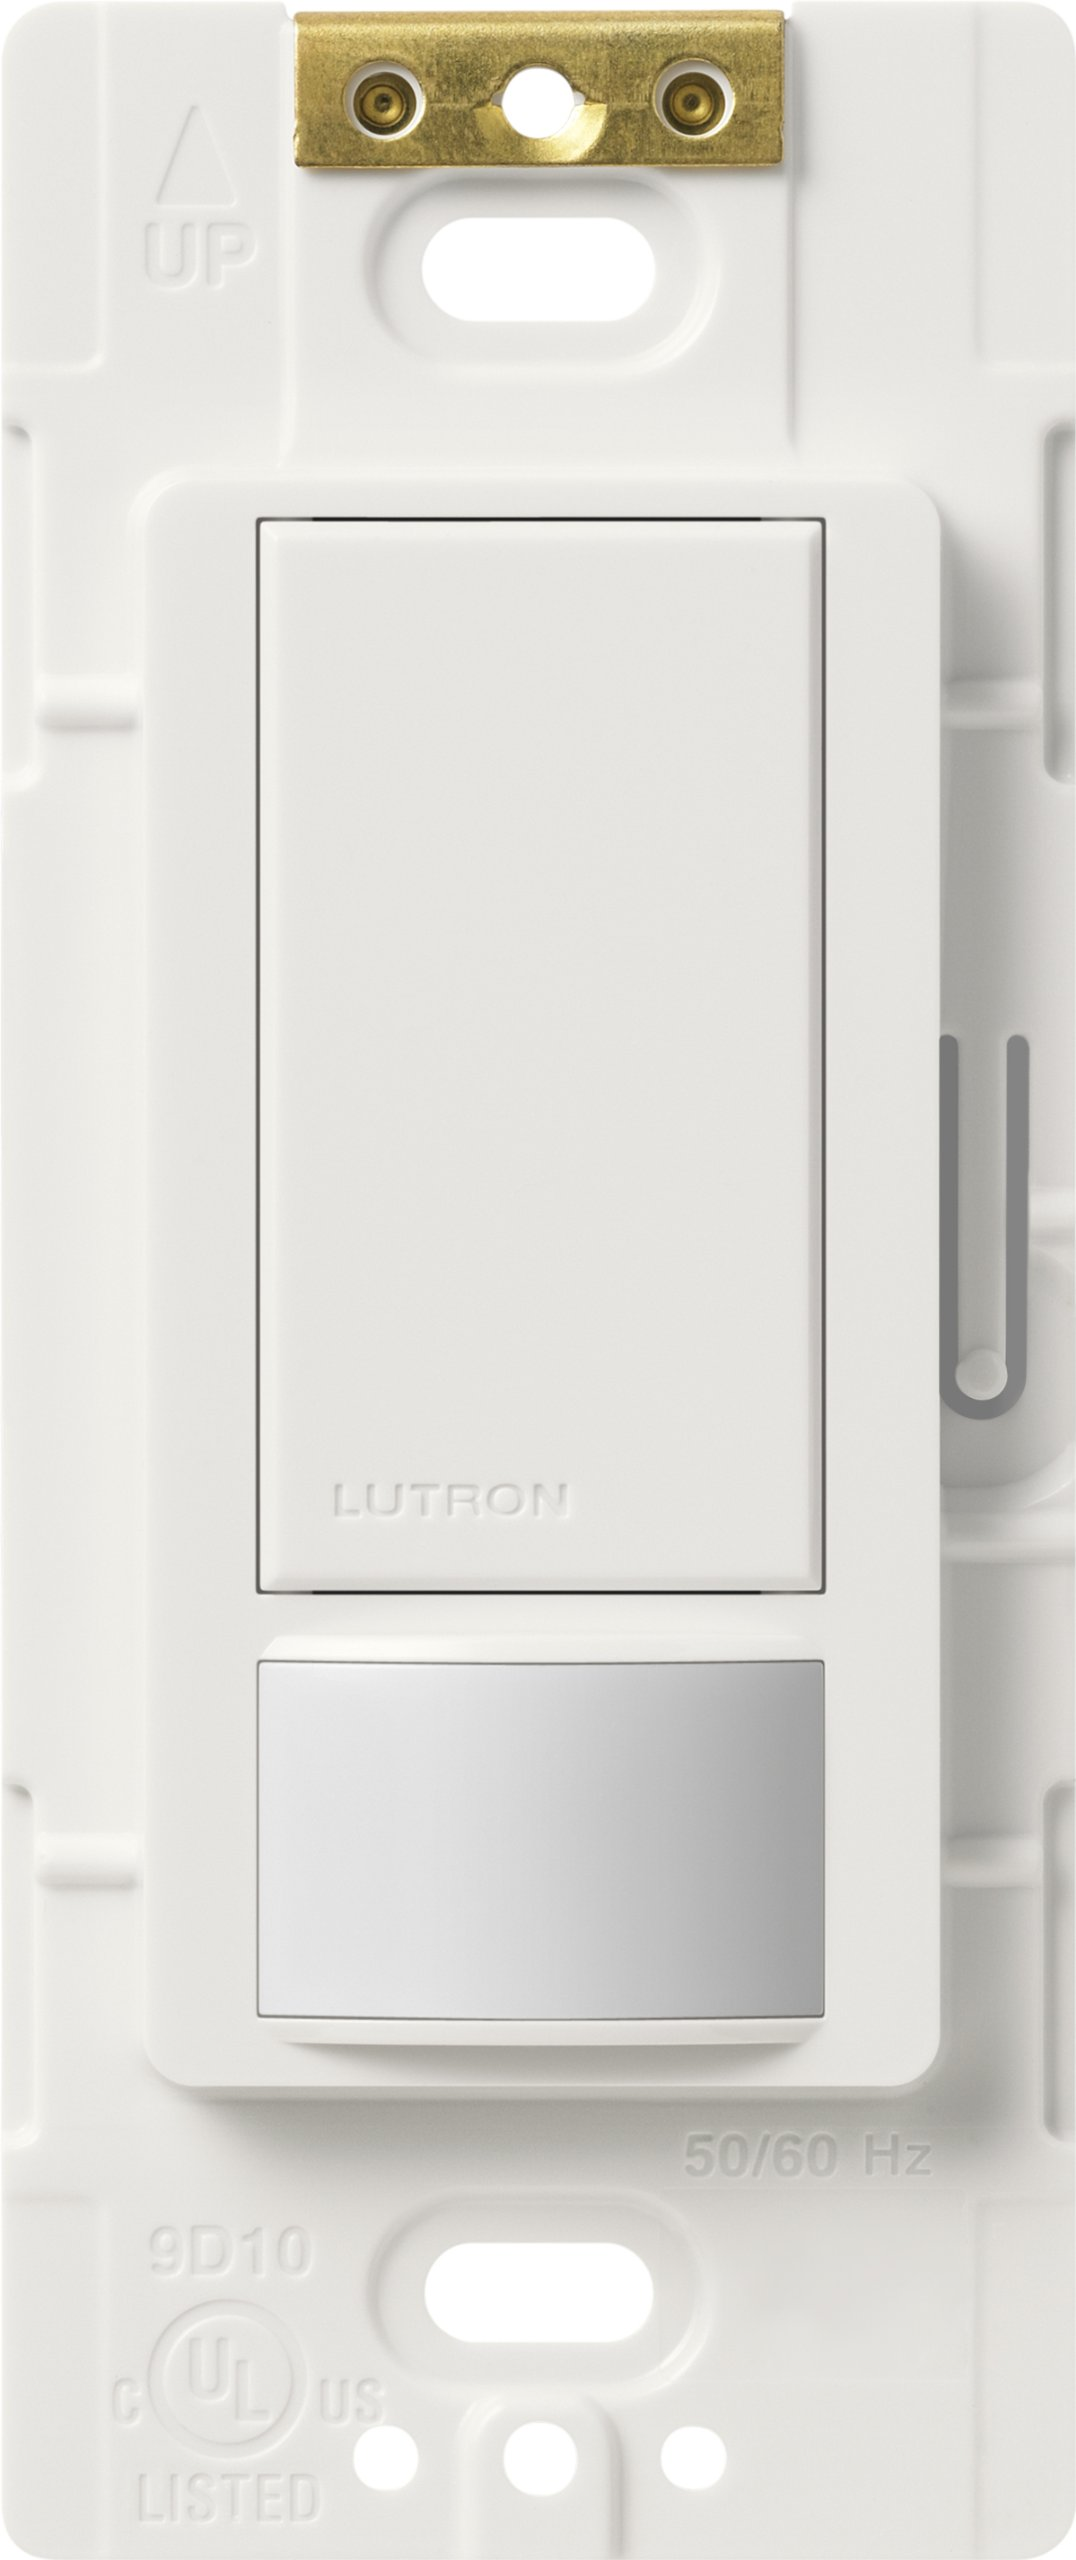 lutron lutron ms ops6m2 dv wh maestro 6 amp multi location dual Lutron Homeworks Wiring Diagram lutron lutron ms ops6m2 dv wh maestro 6 amp multi location dual voltage occupancy sensing switch, white incandescent bulbs amazon com